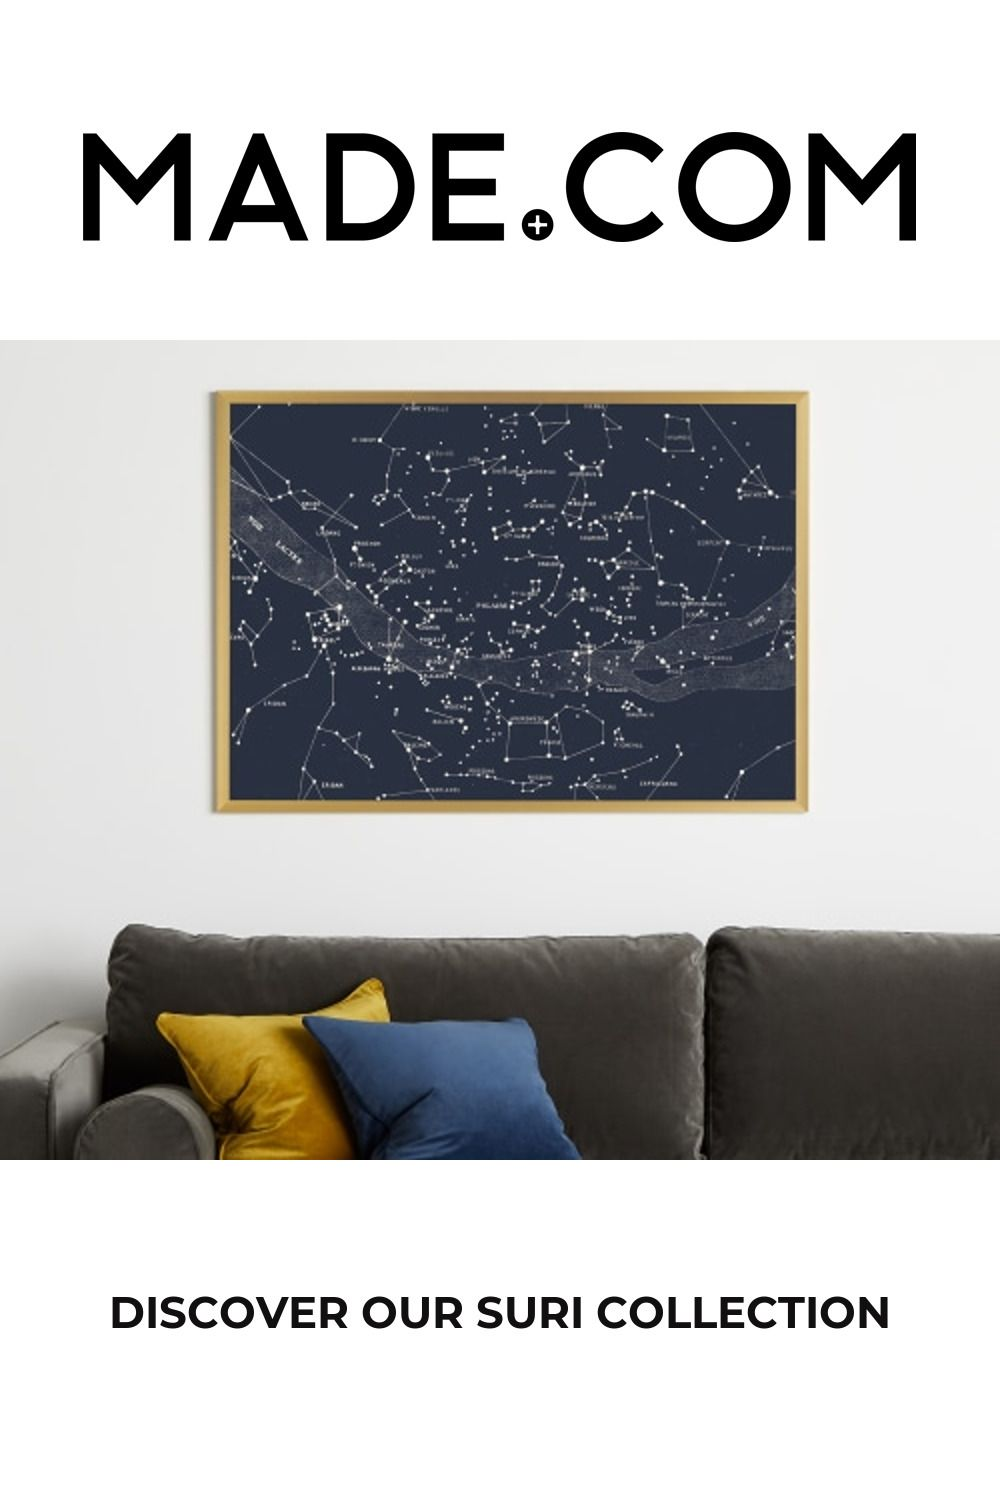 Suri Celestial Large Vintage Framed Wall Art Print 70 x 100cm, Navy & Gold